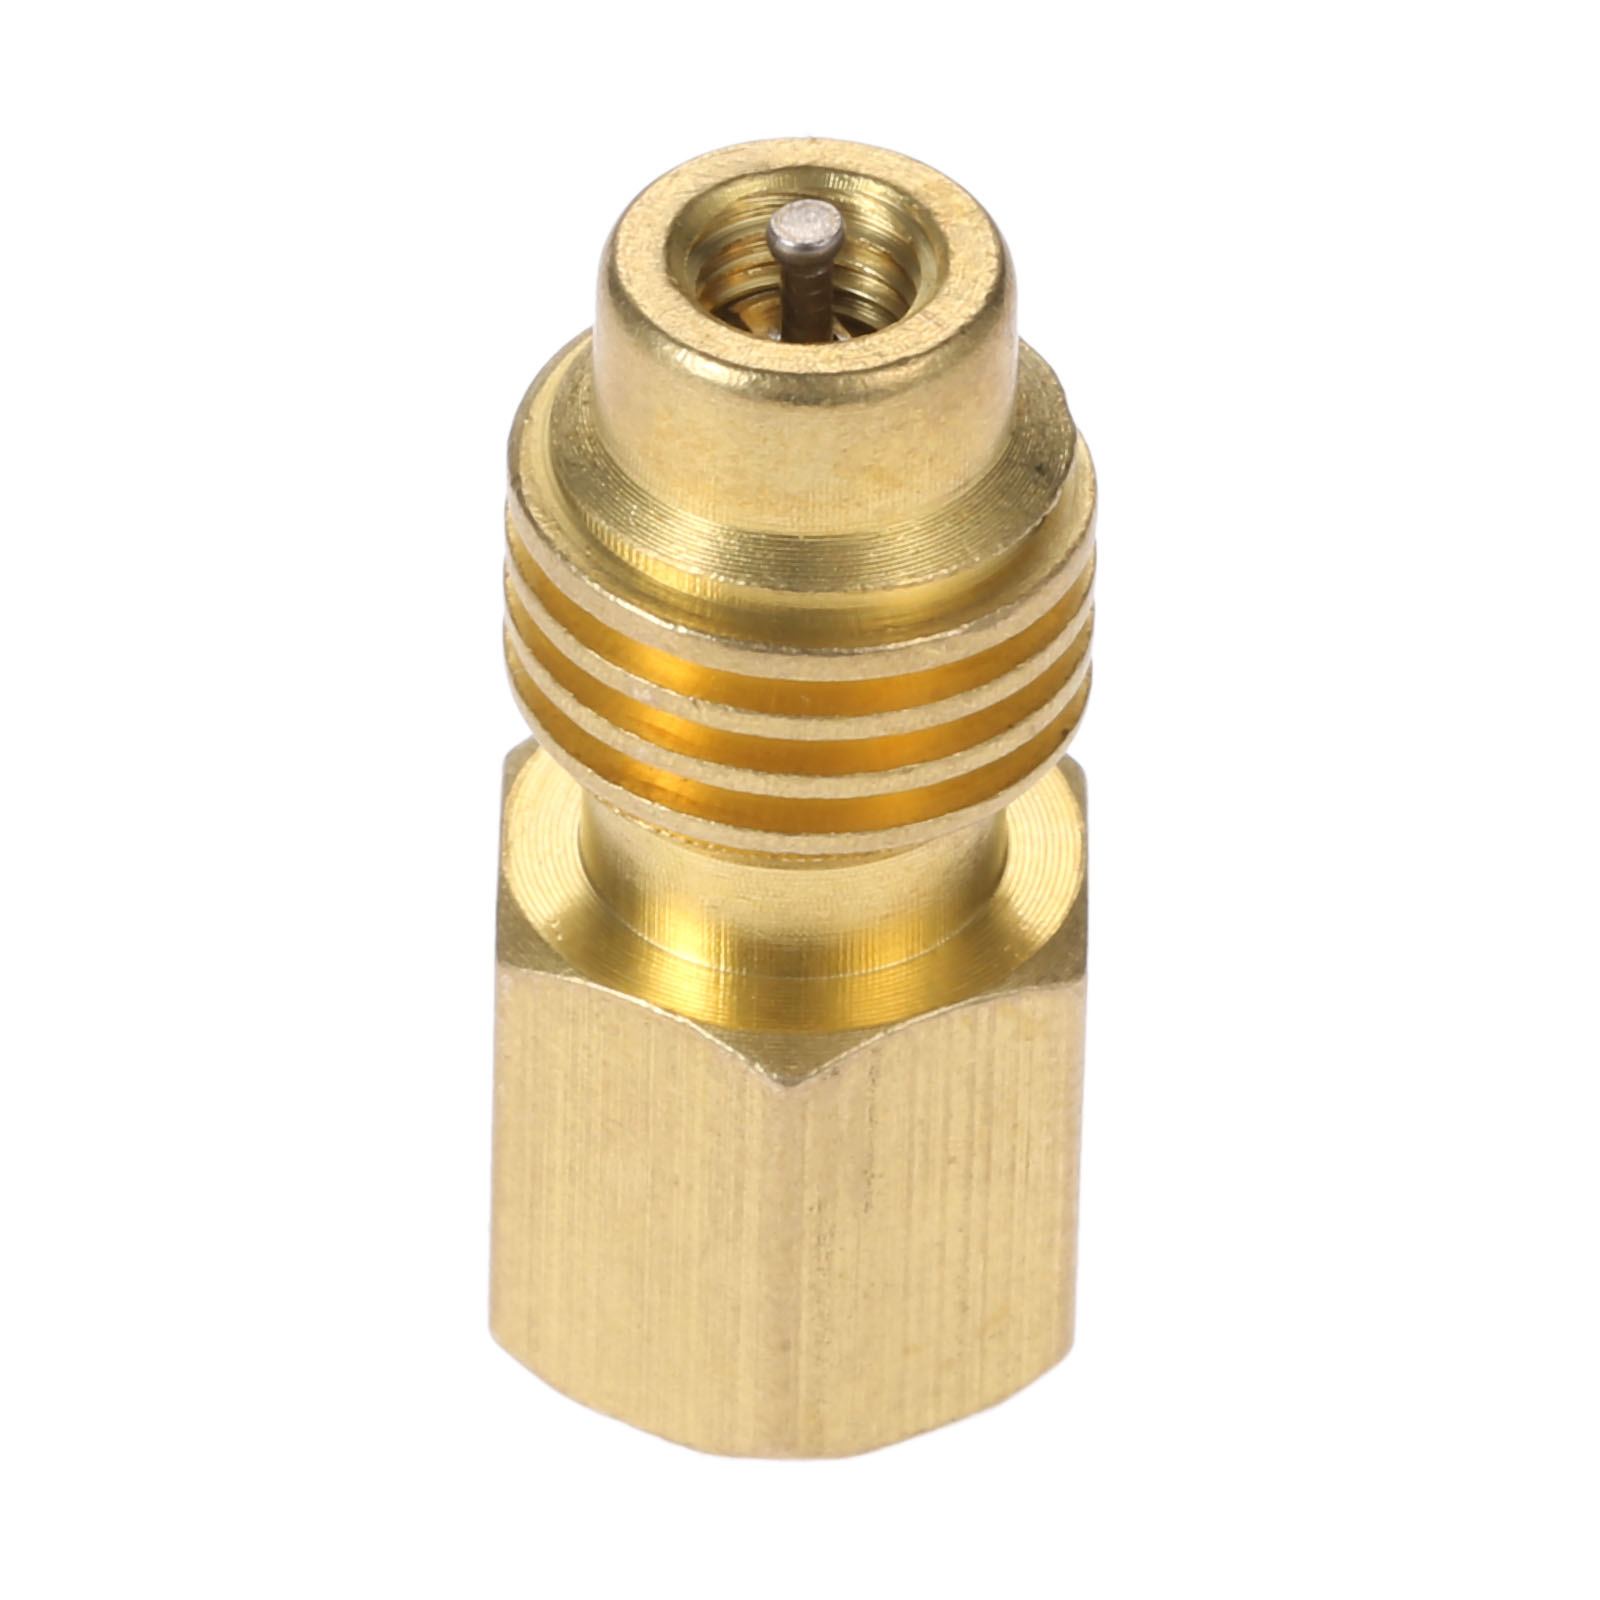 Image 4 - Yetaha R1234yf Hose Adapter 1/2'' ACME LH Left Hand 1/4'' SAE Female FL Brass Valve Core Car Air Conditioning Tools Fitting-in Air-conditioning Installation from Automobiles & Motorcycles